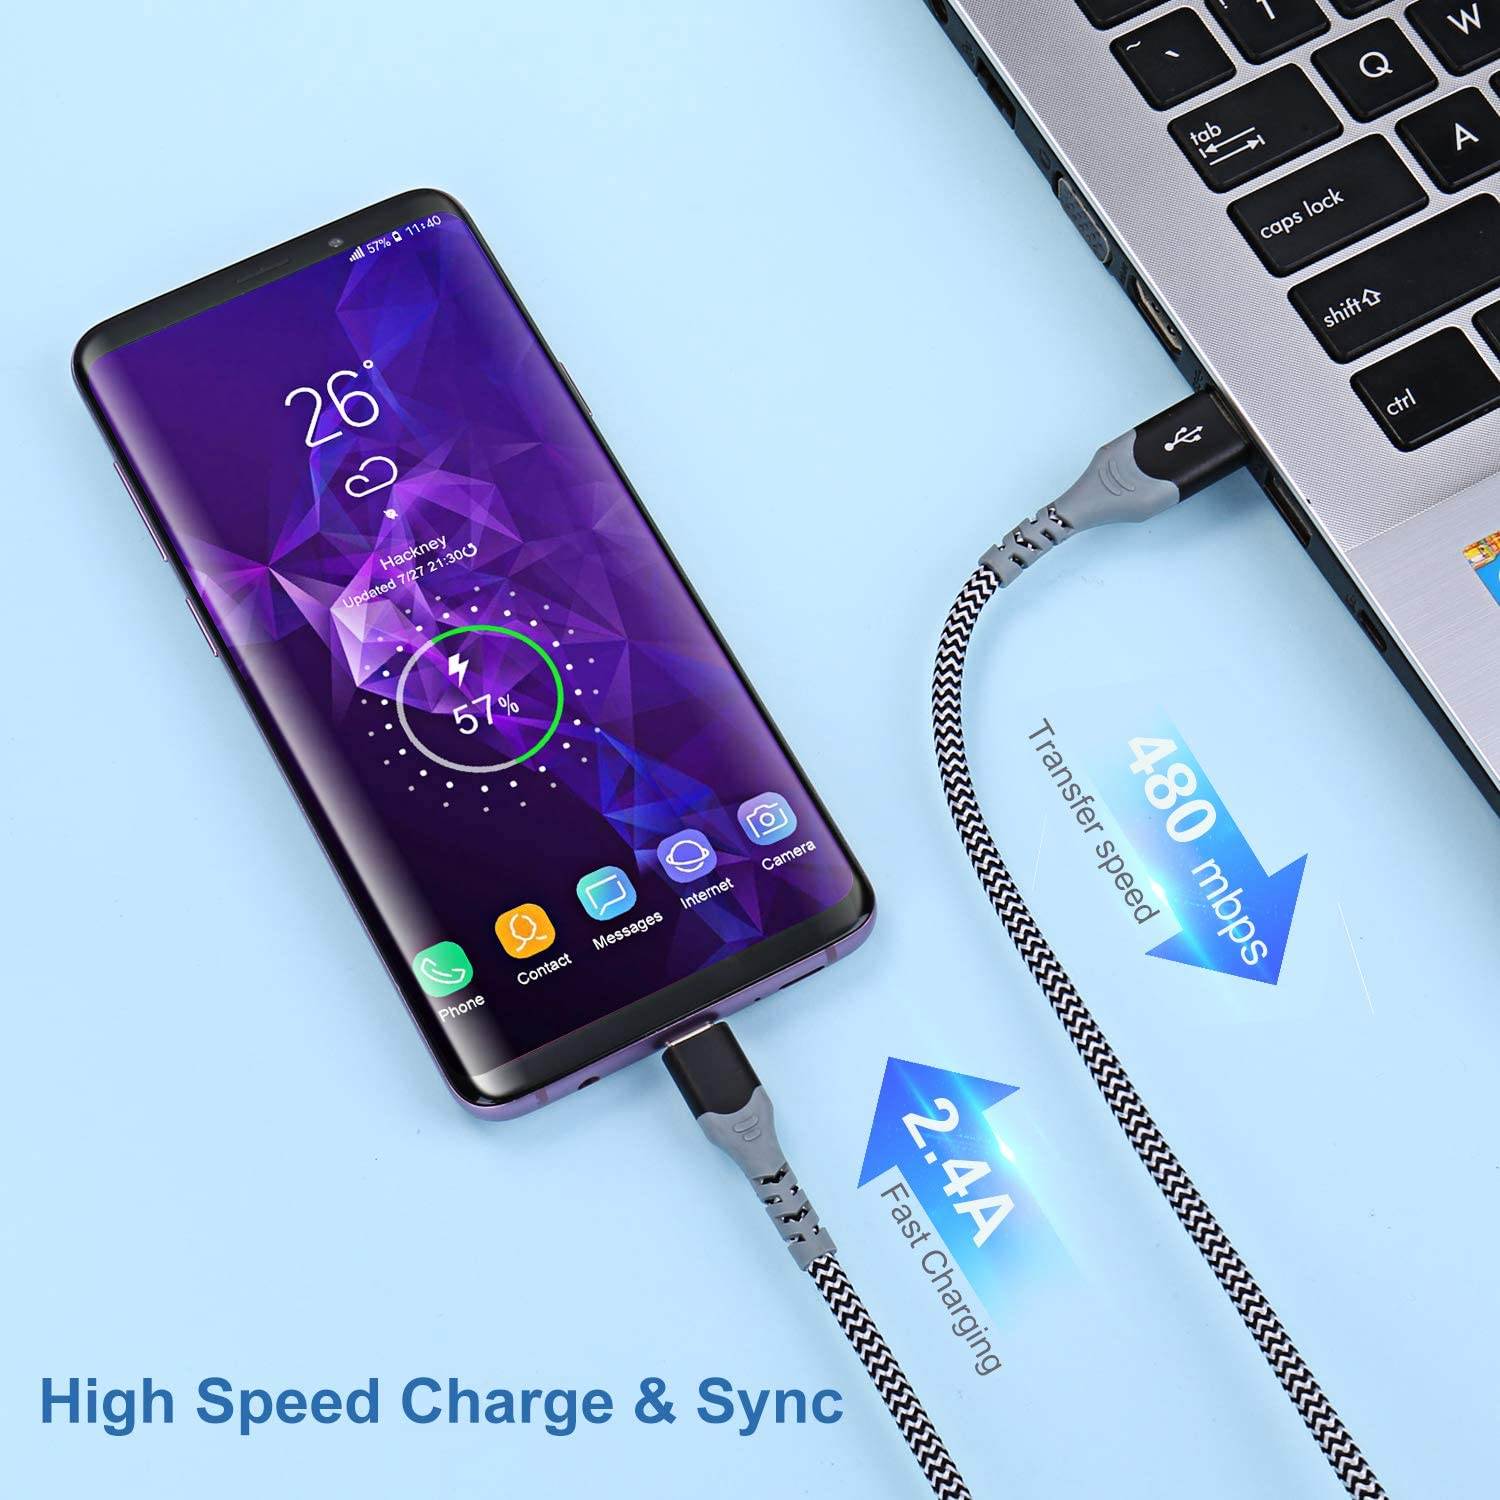 Excgood Fast Charger Power Adapter USB Type C Cable Fast Charging Compatible with Samsung Galaxy S8//9+//10e,Note 8//9,LG G5//6 V20//30-Black Adaptive Fast Charging Wall Charger with USB C Cable 10Ft